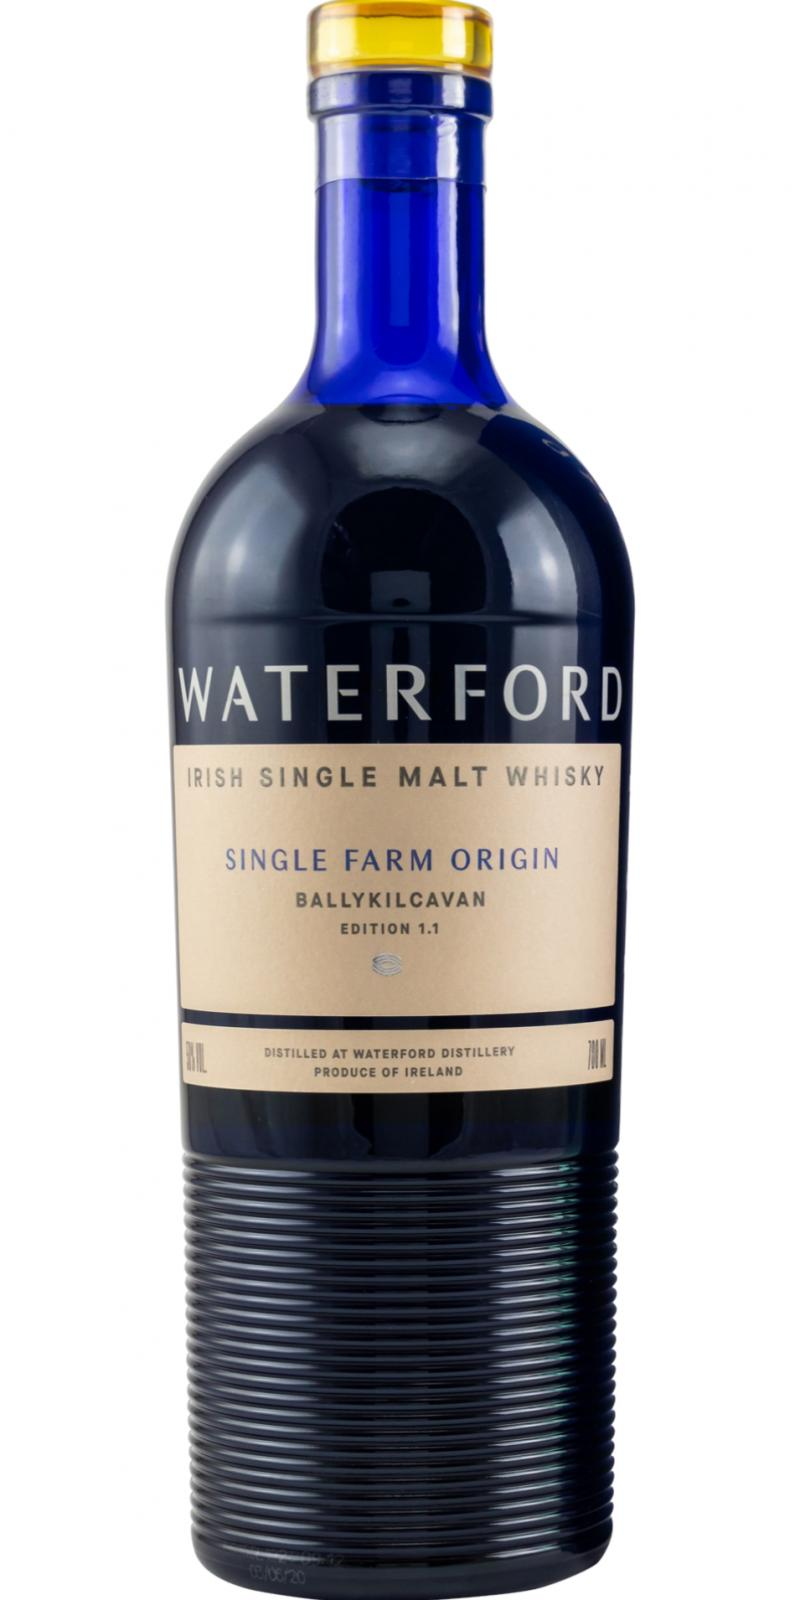 Waterford Ballykilcavan: Edition 1.1